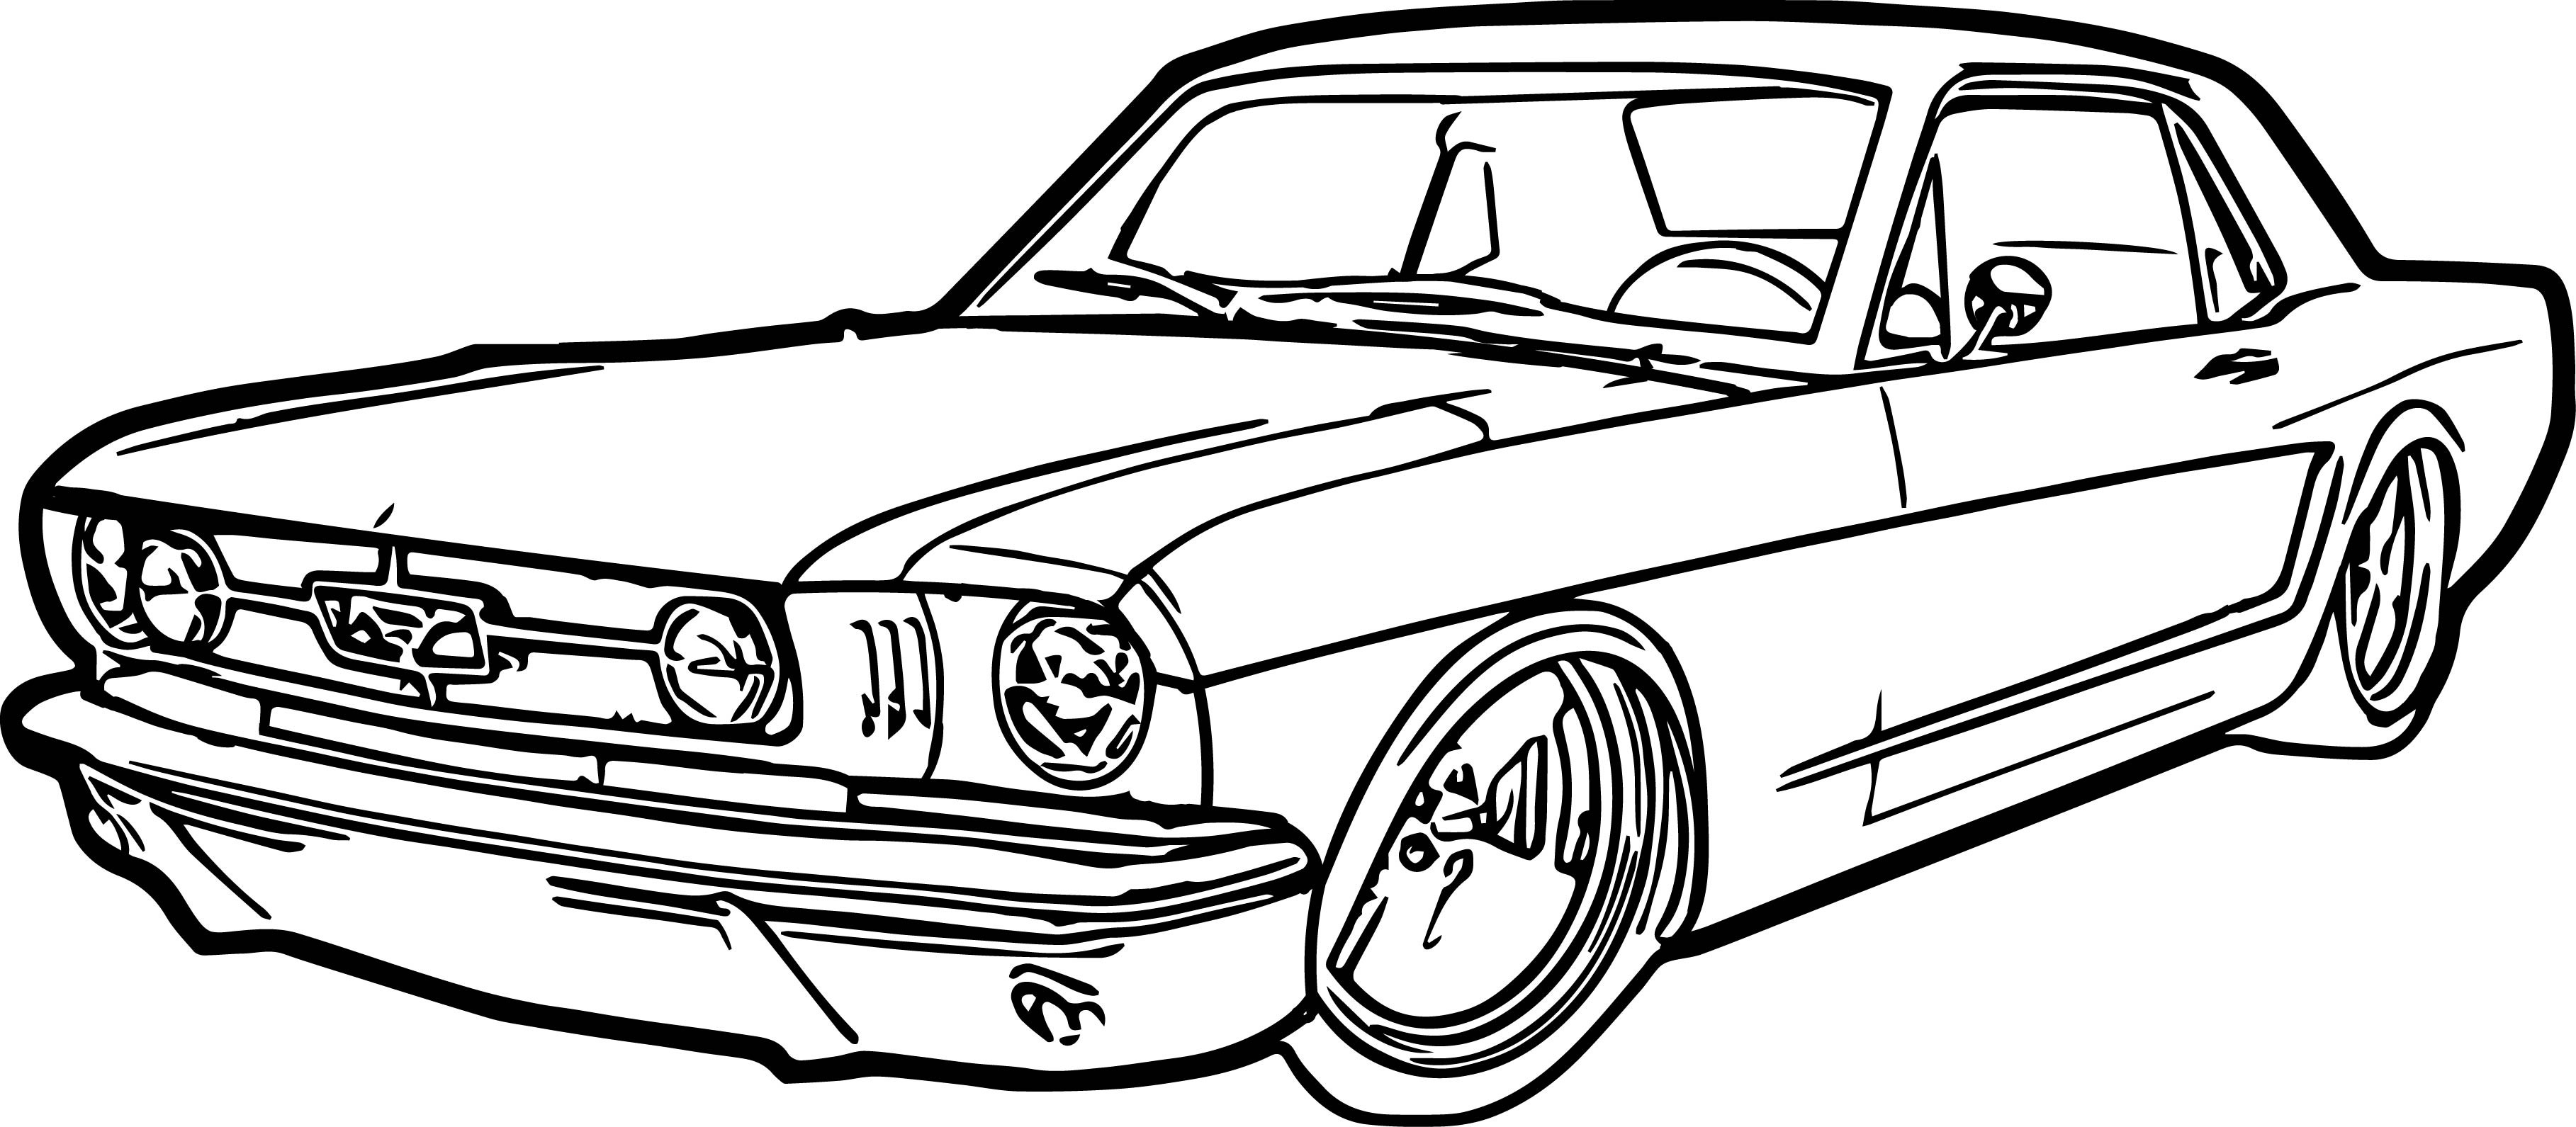 race car coloring race car coloring pages free download on clipartmag coloring race car